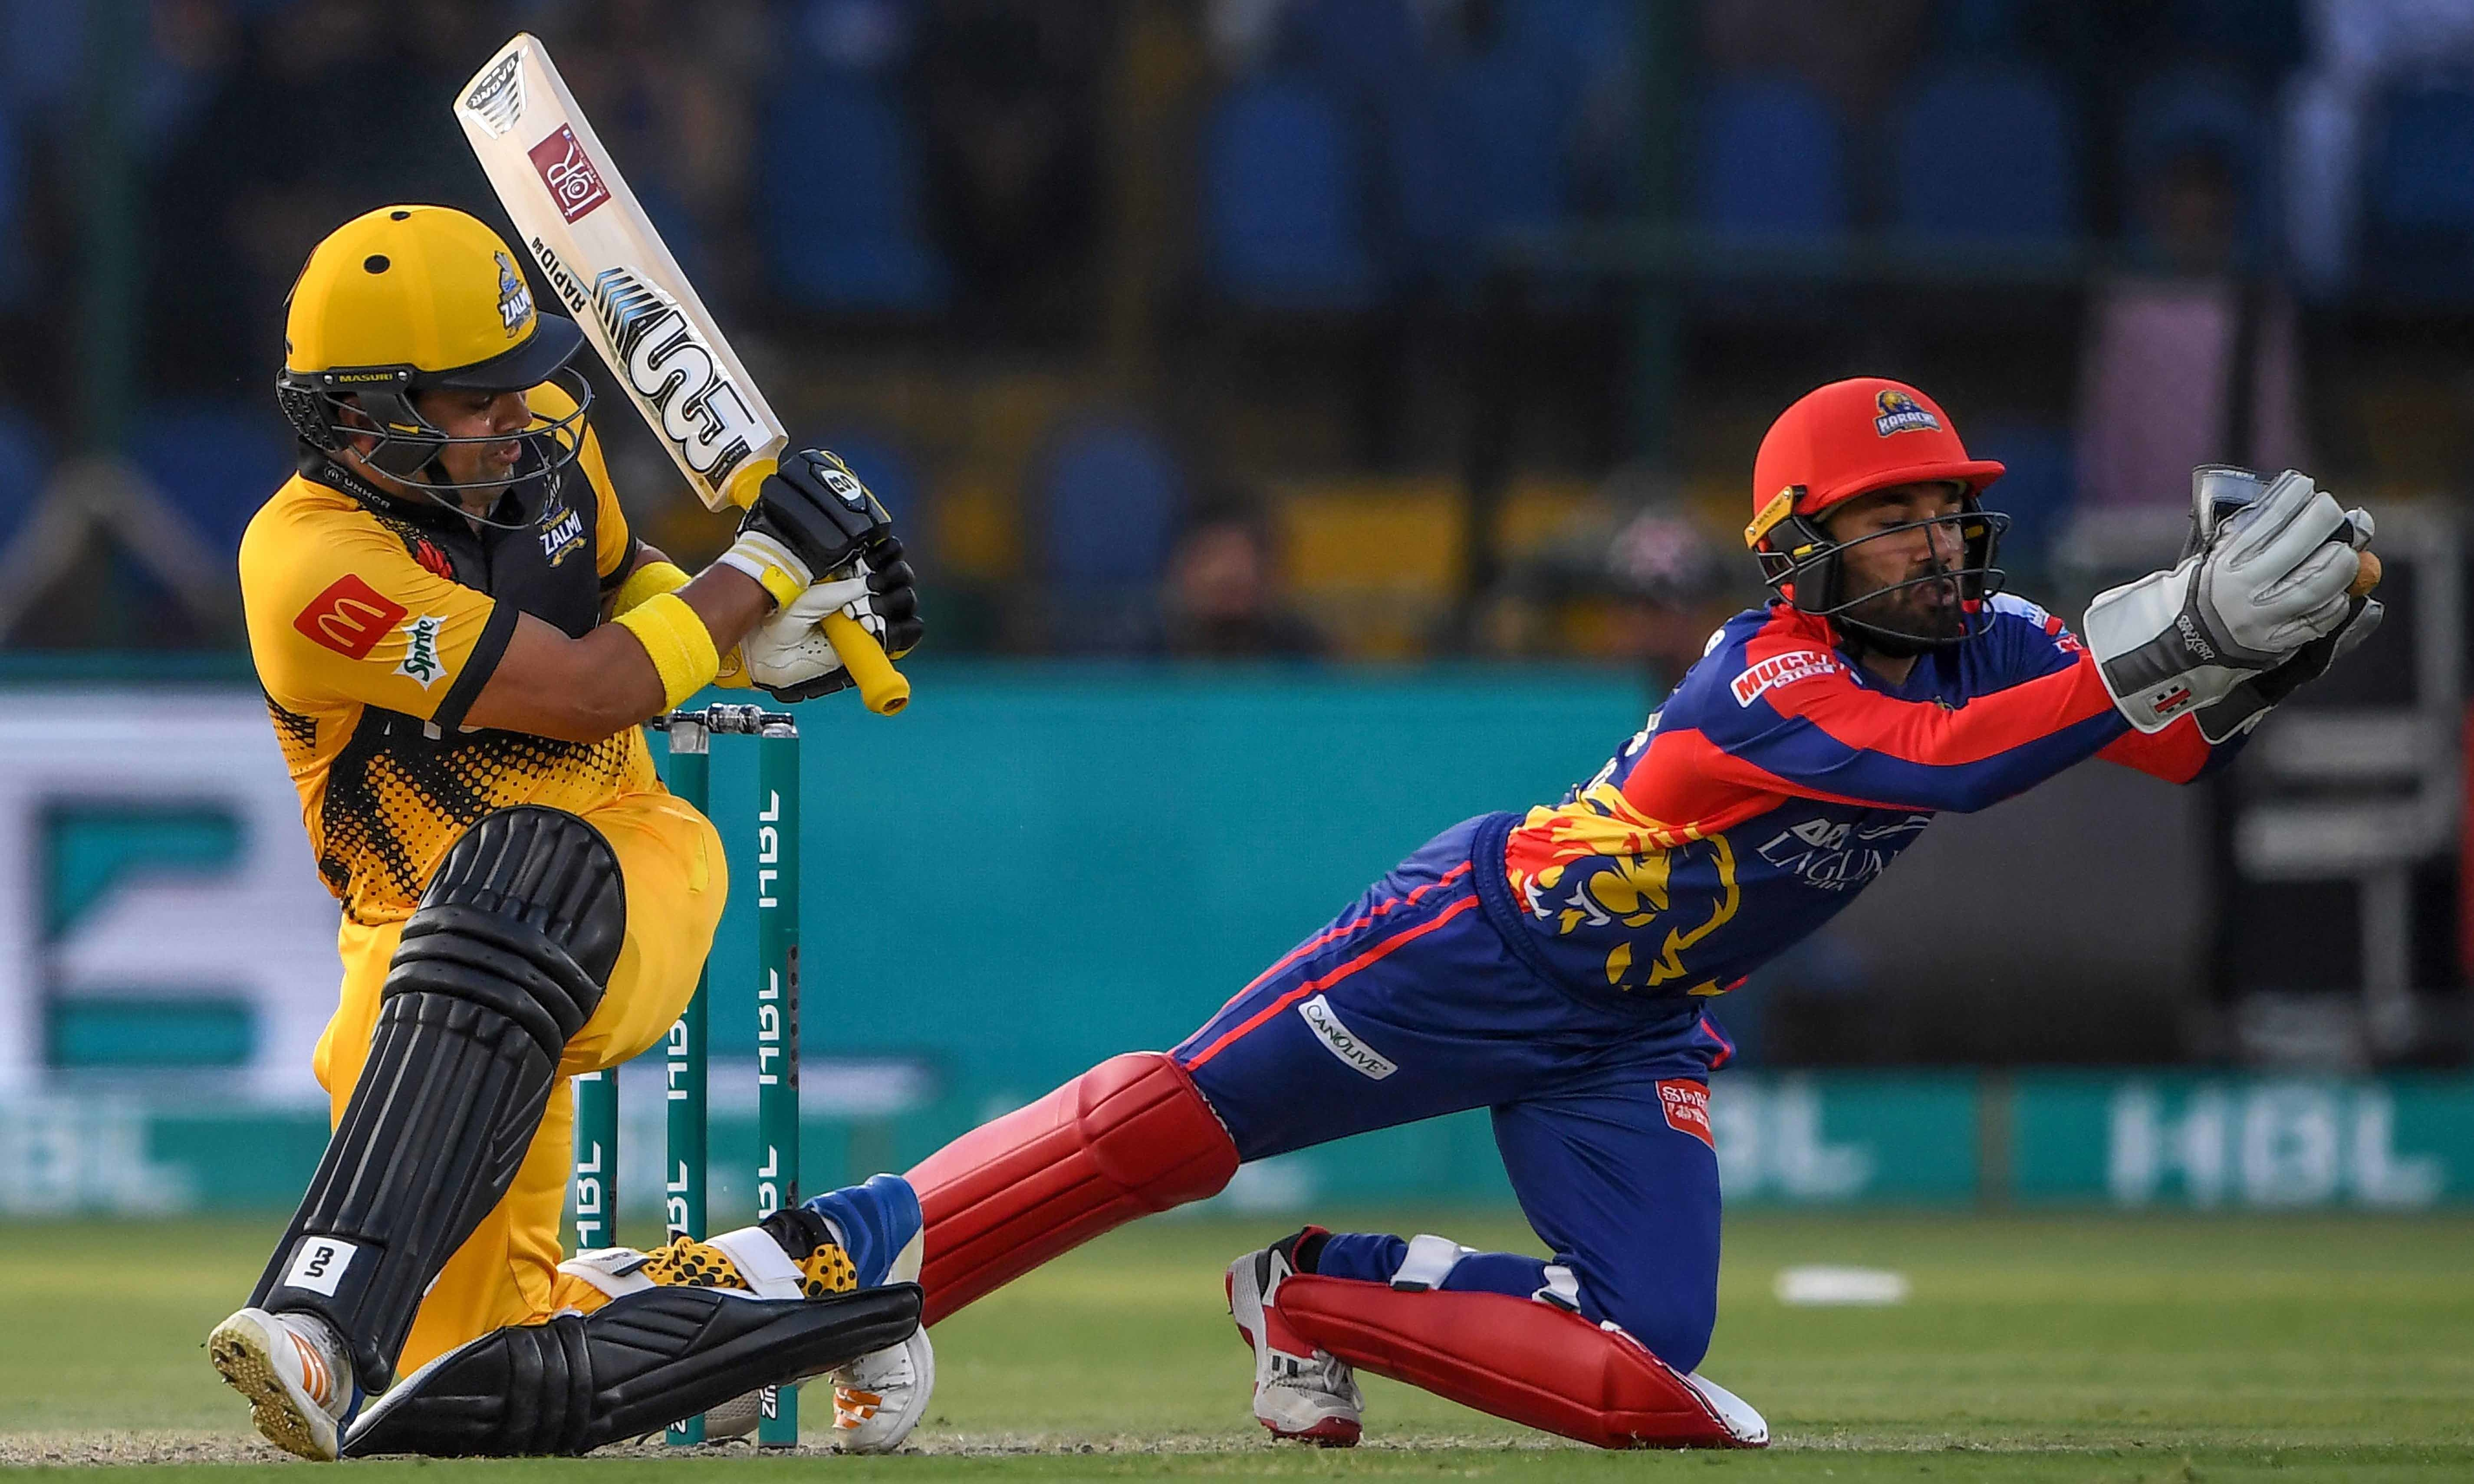 PSL 2020: Karachi Kings win toss, elect to bat against Quetta Gladiators